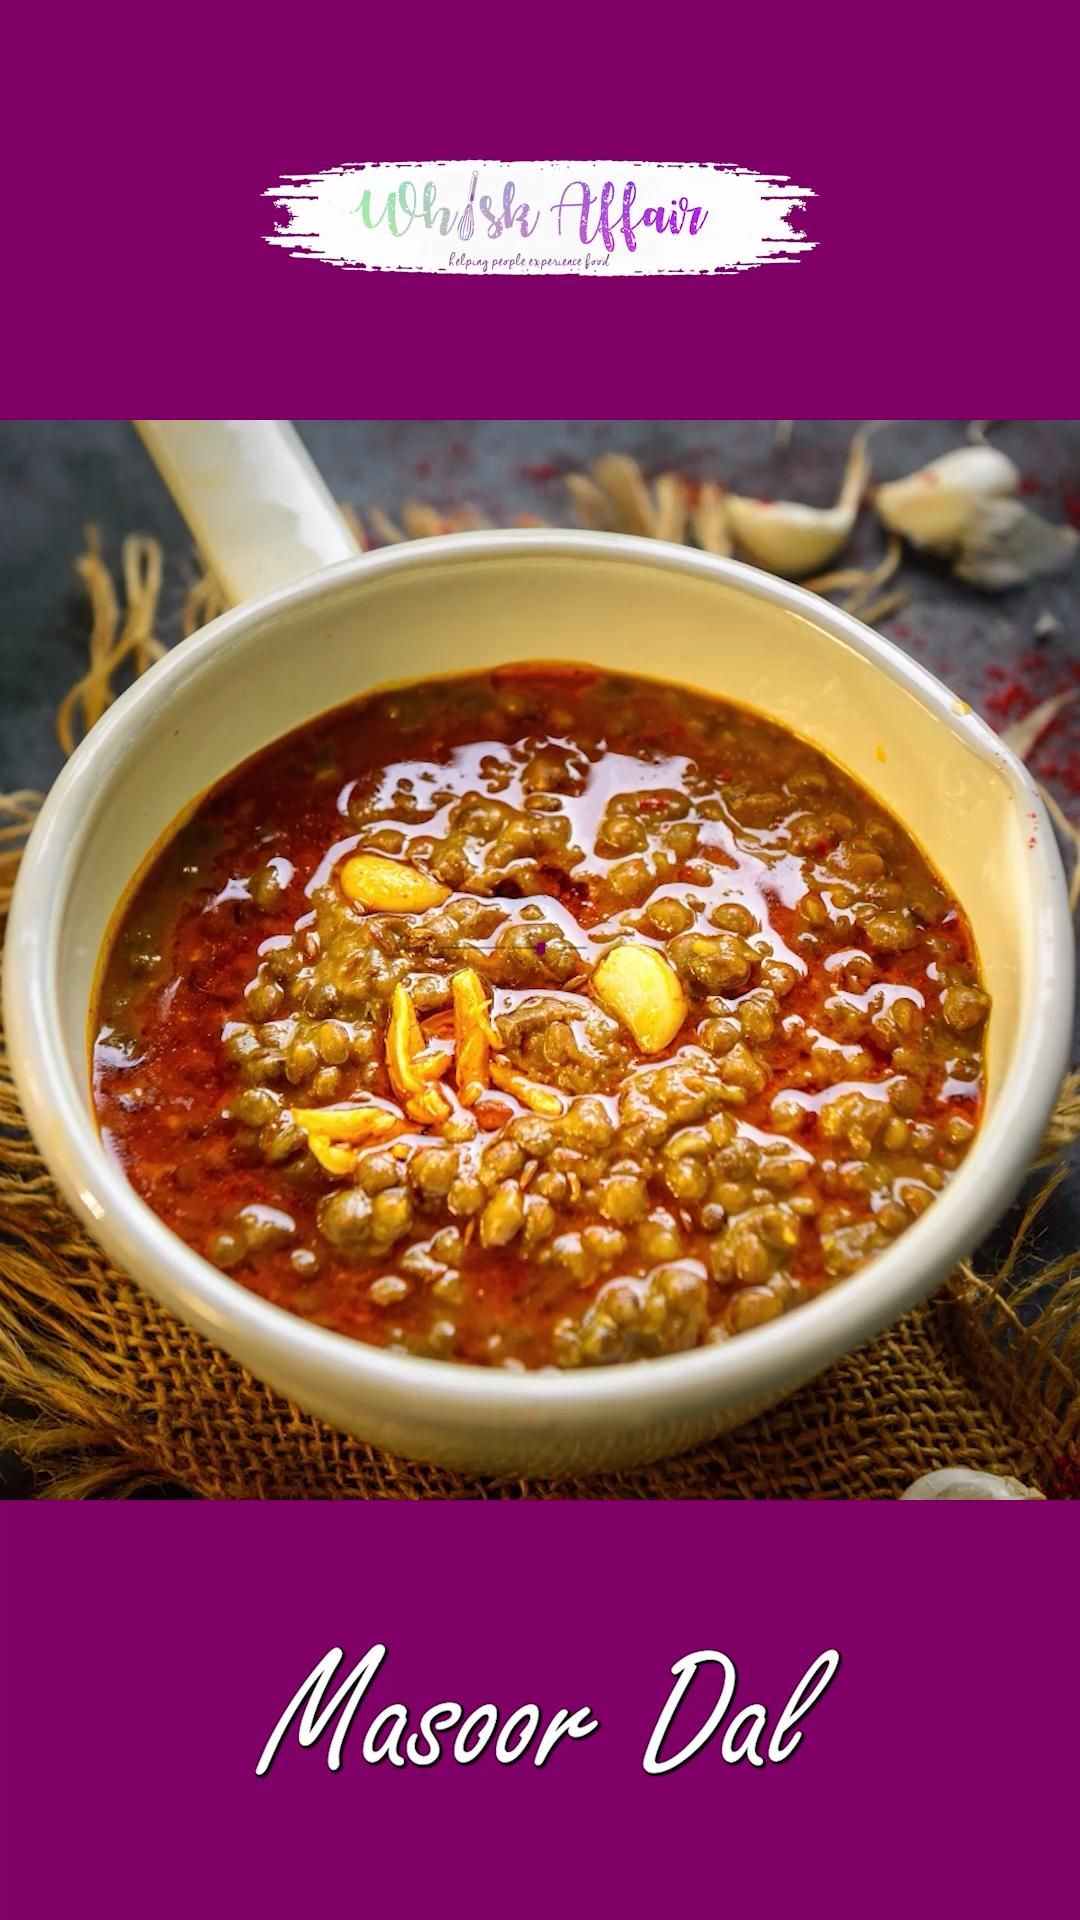 Whole Masoor Dal is a delicious Indian red lentil recipe that is easy to cook, healthy, and tastes fabulous. This lentil soup is a great source of vegetarian protein. Here is how to make it.